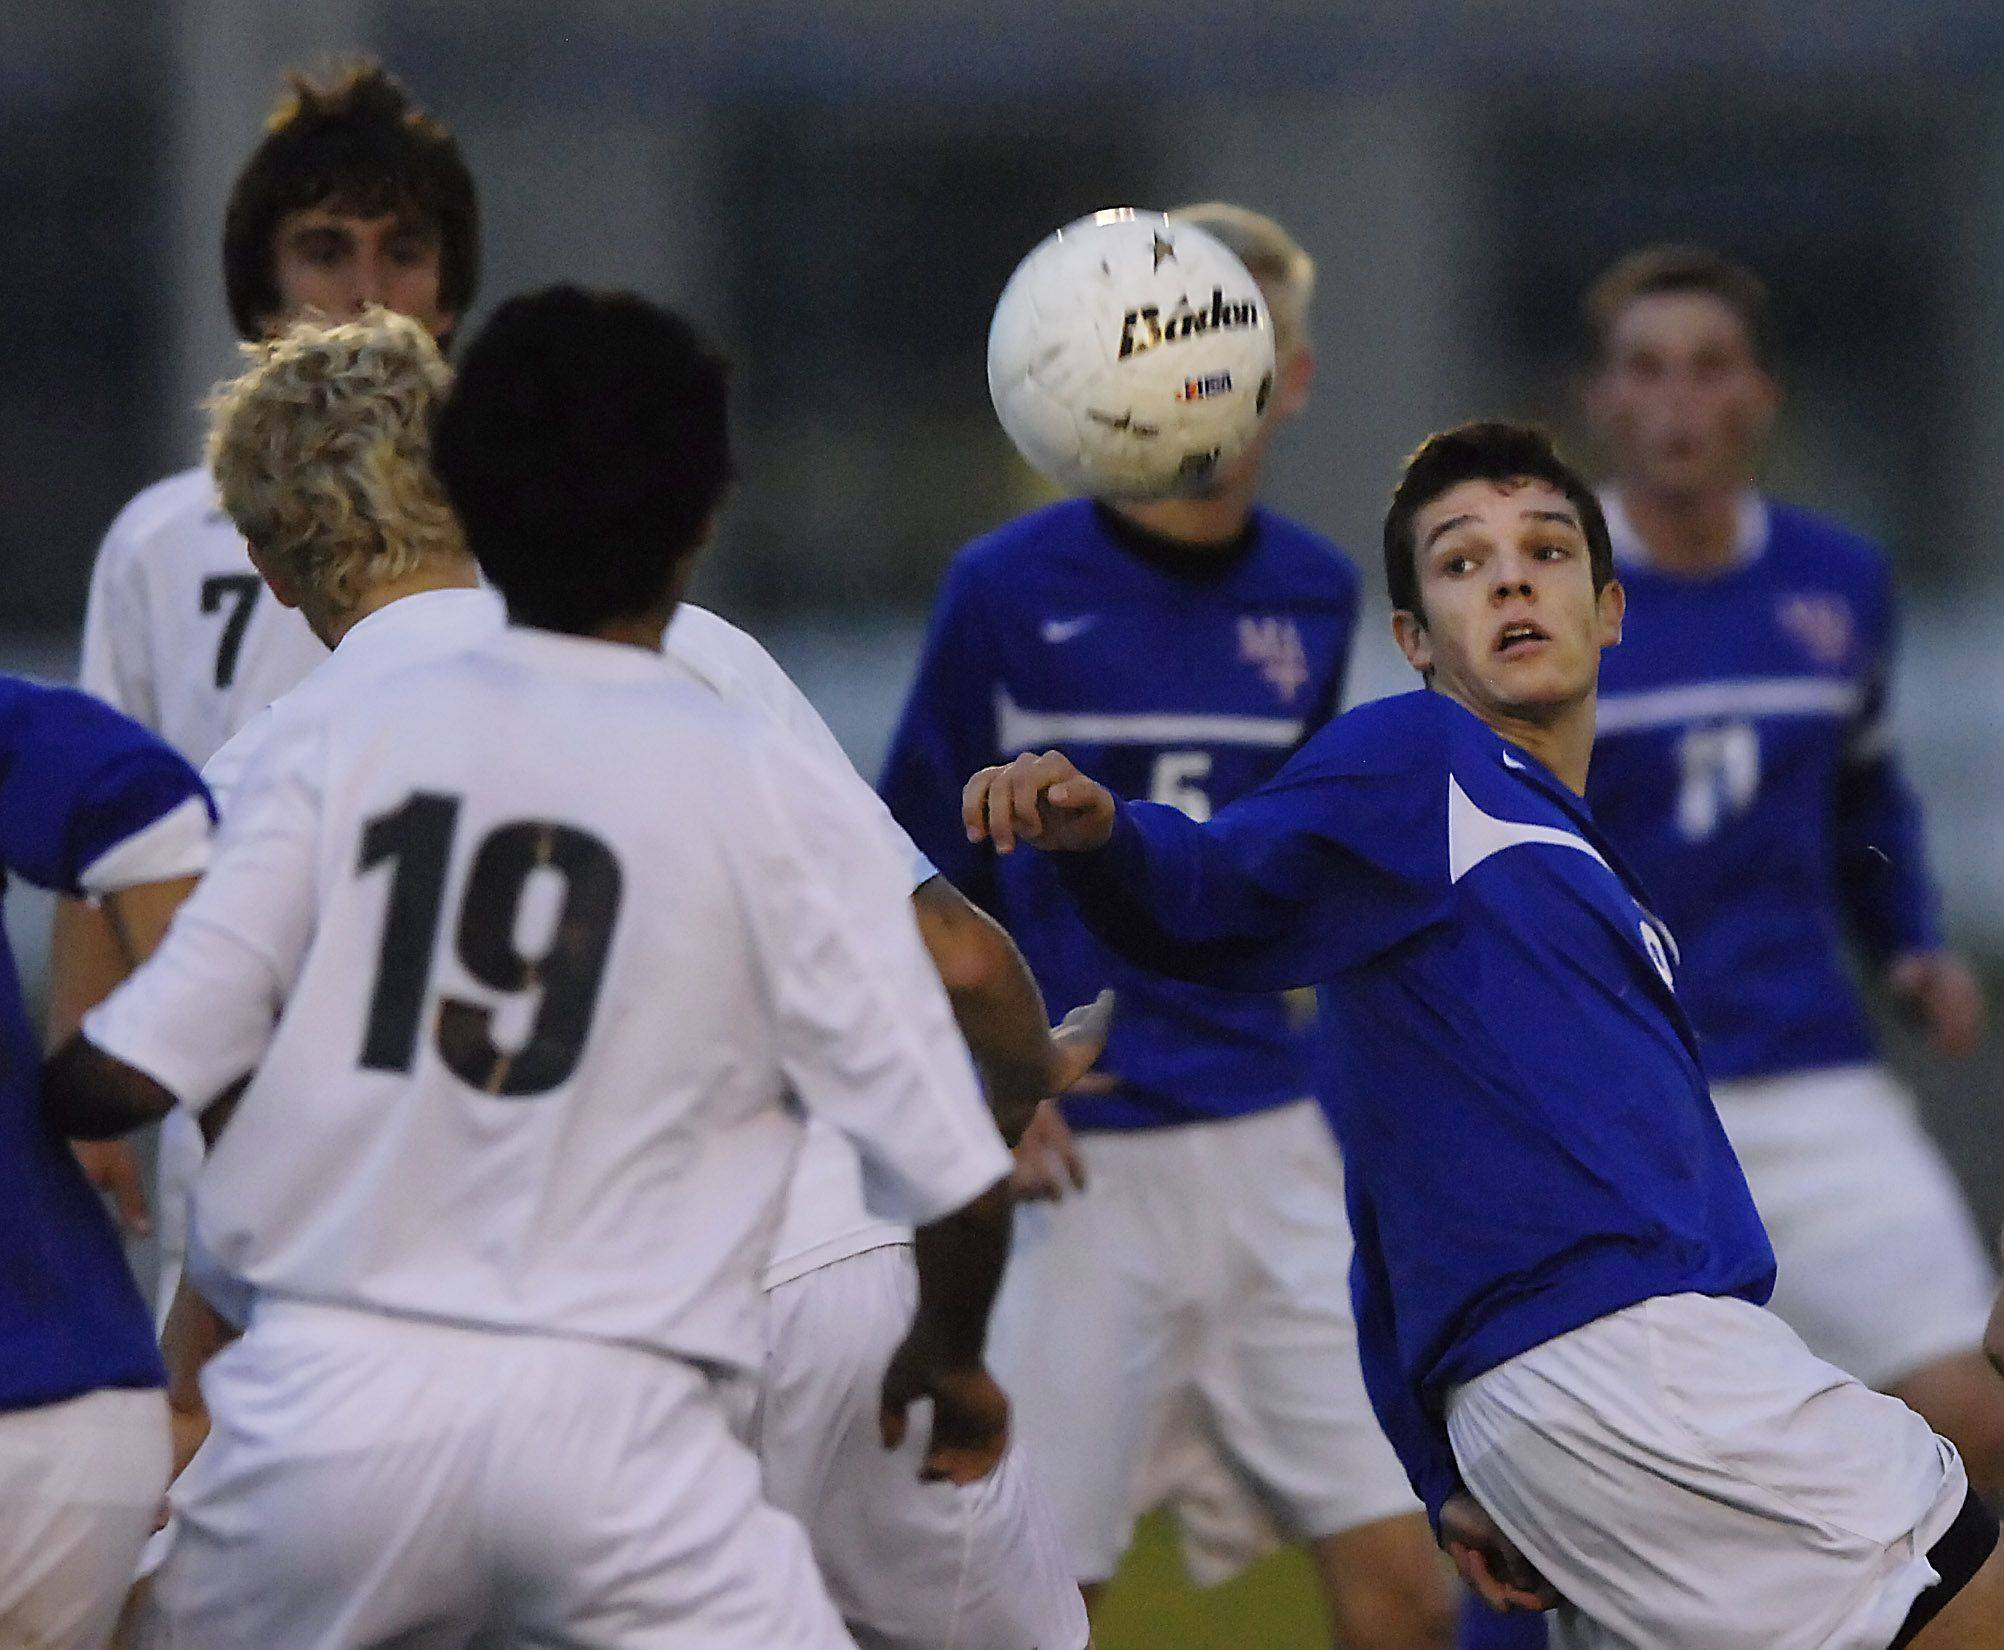 Marmion Academy's Mike Frasca fights for another shot in front of the Burlington Central net Monday.